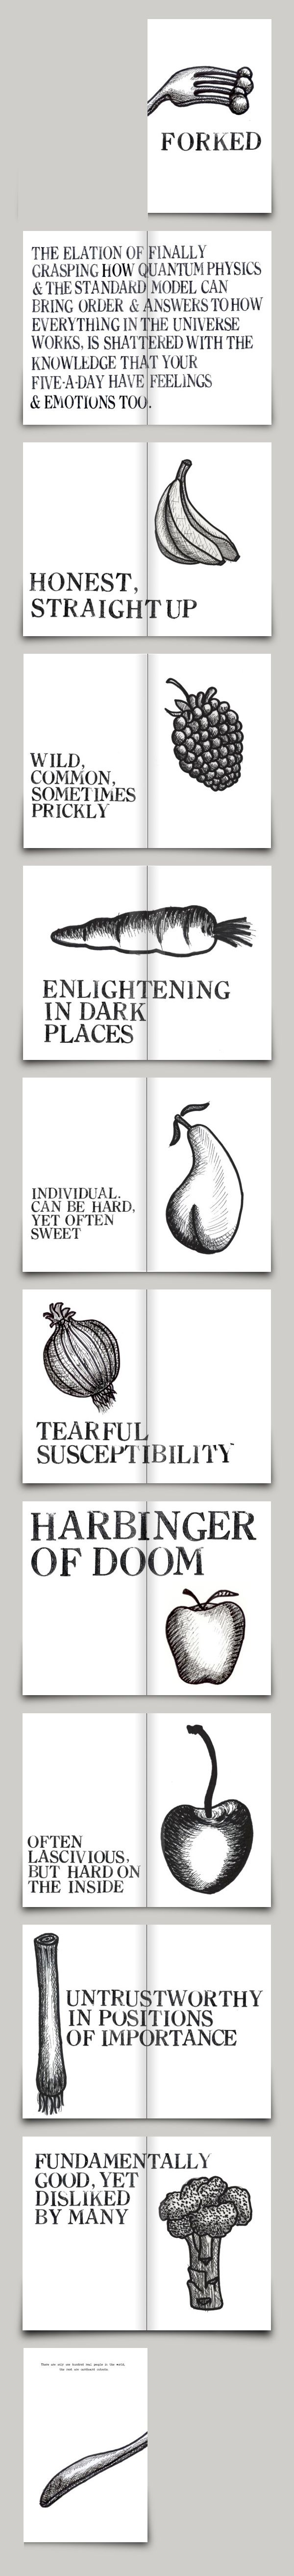 Forked - a light hearted look at how your fruit and vegetables might have feelings too.    Available at Magcloud:    http://www.magcloud.com/browse/issue/335392